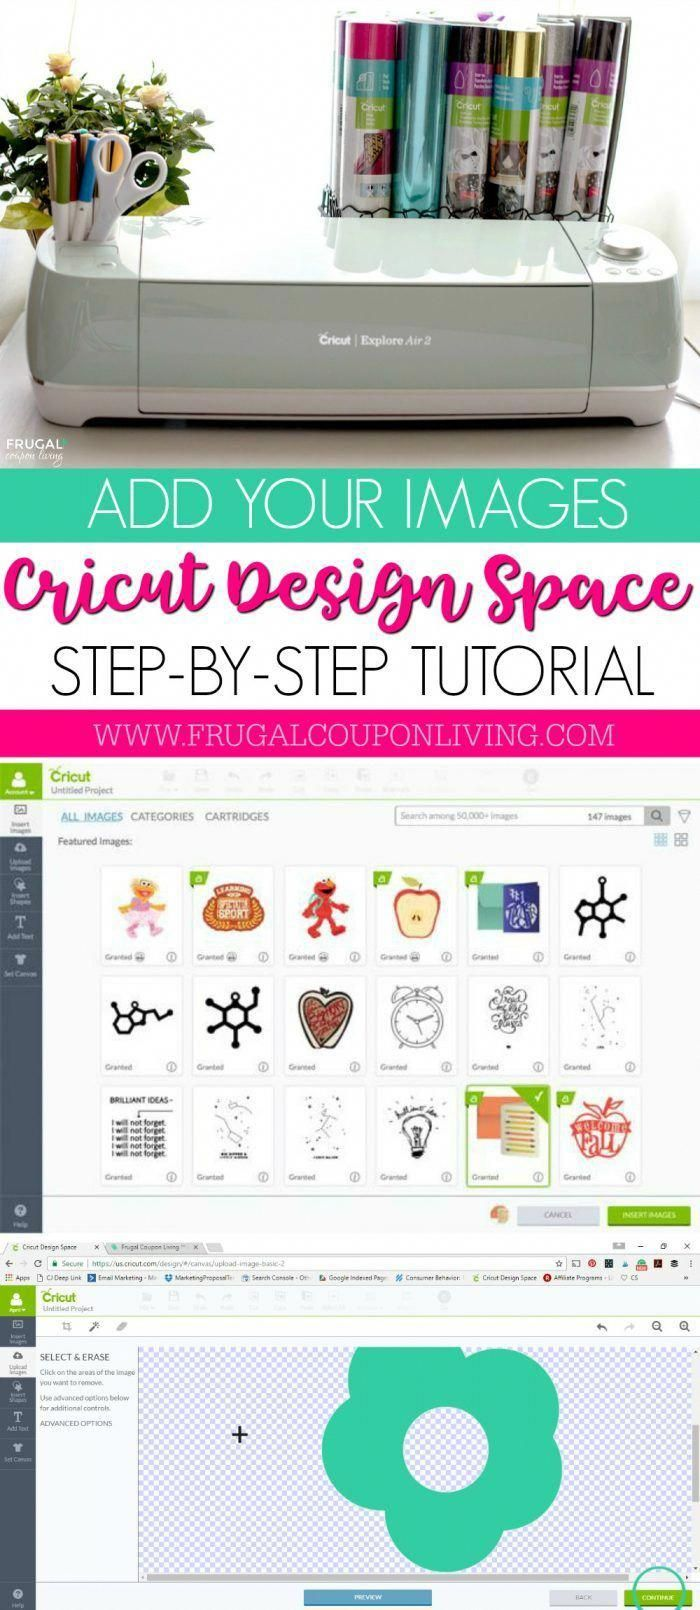 Easy Step By Step Circut Tutorial How To Add Your Own Images To Cricut Design Space Directions On Frugal Coupon Living Projectsforkids Cricut Tutorials